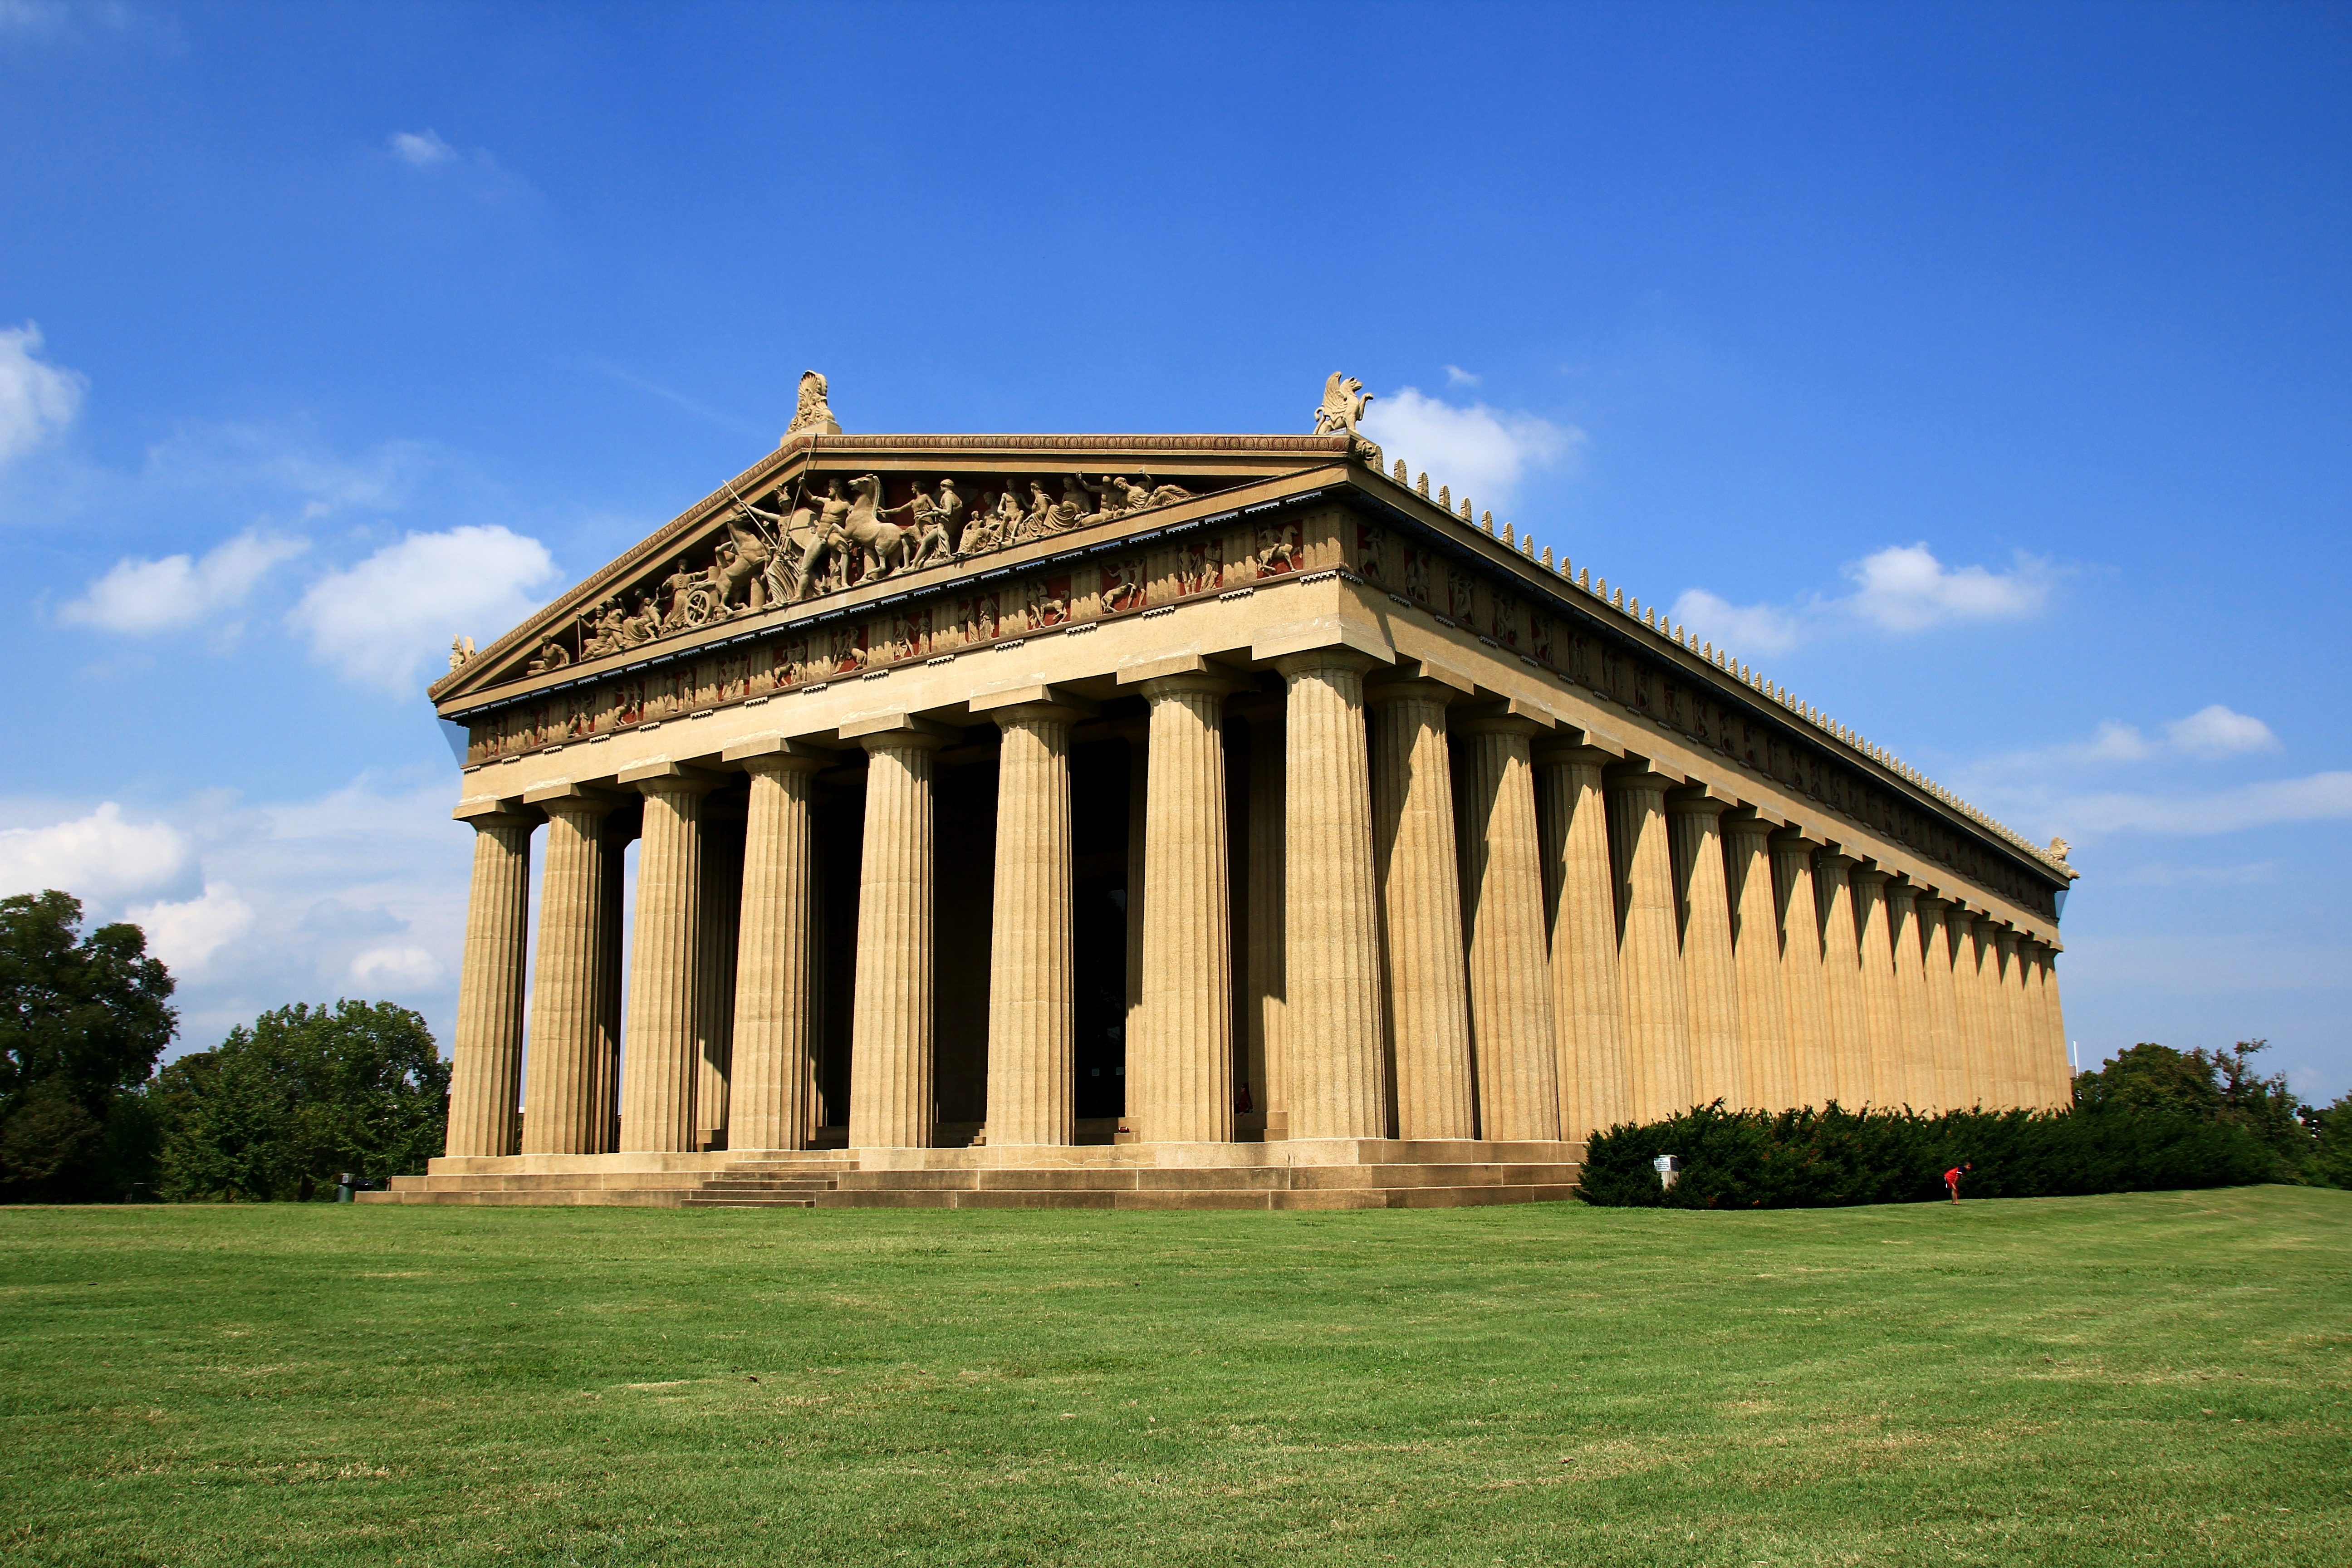 why is there a full scale replica of the parthenon in nashville